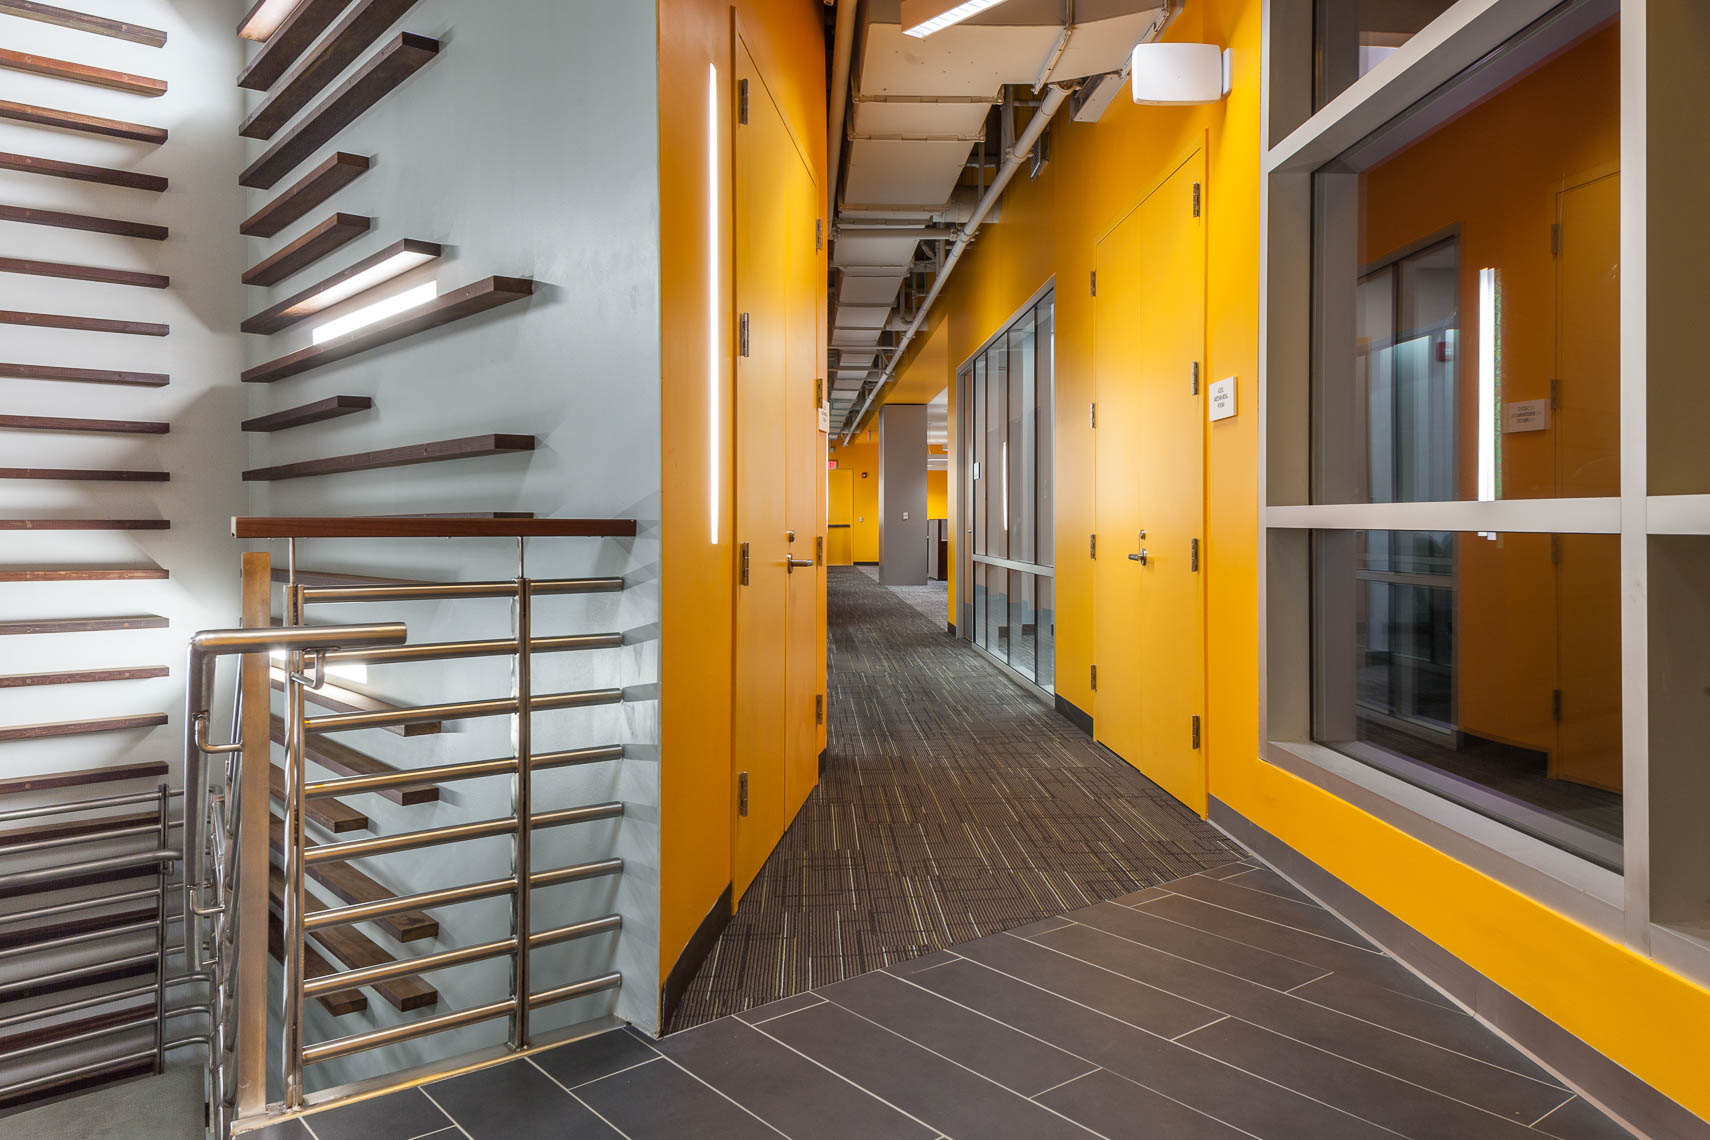 Long corridor with dynamic lighting and yellow walls at night